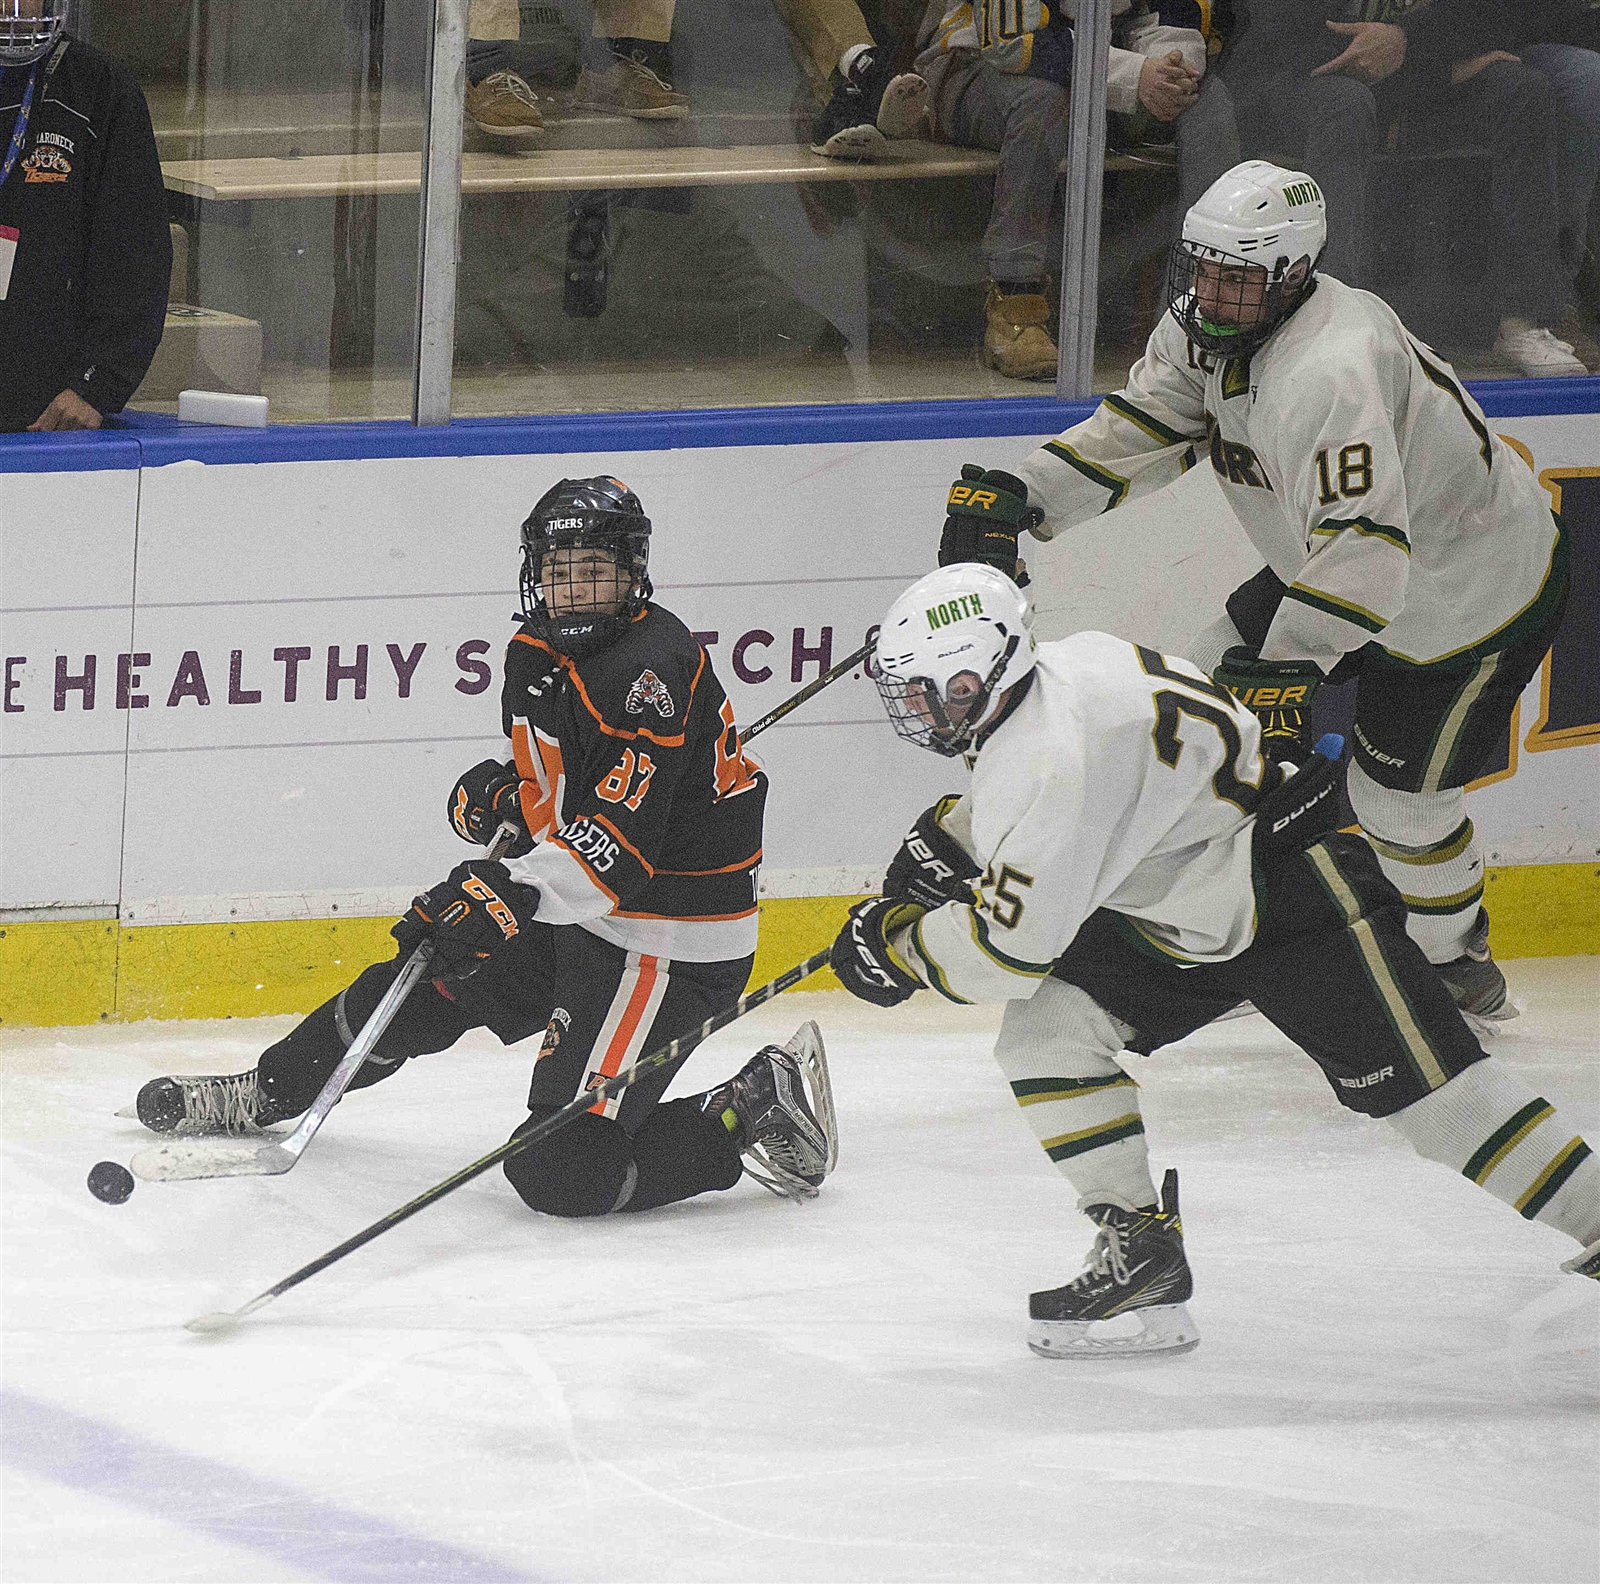 Williamsville North's Dan Mosher (25) covers Mamaroneck's Harrison Schreiber (87) as he struggles with the puck. (John Hickey/Buffalo News)